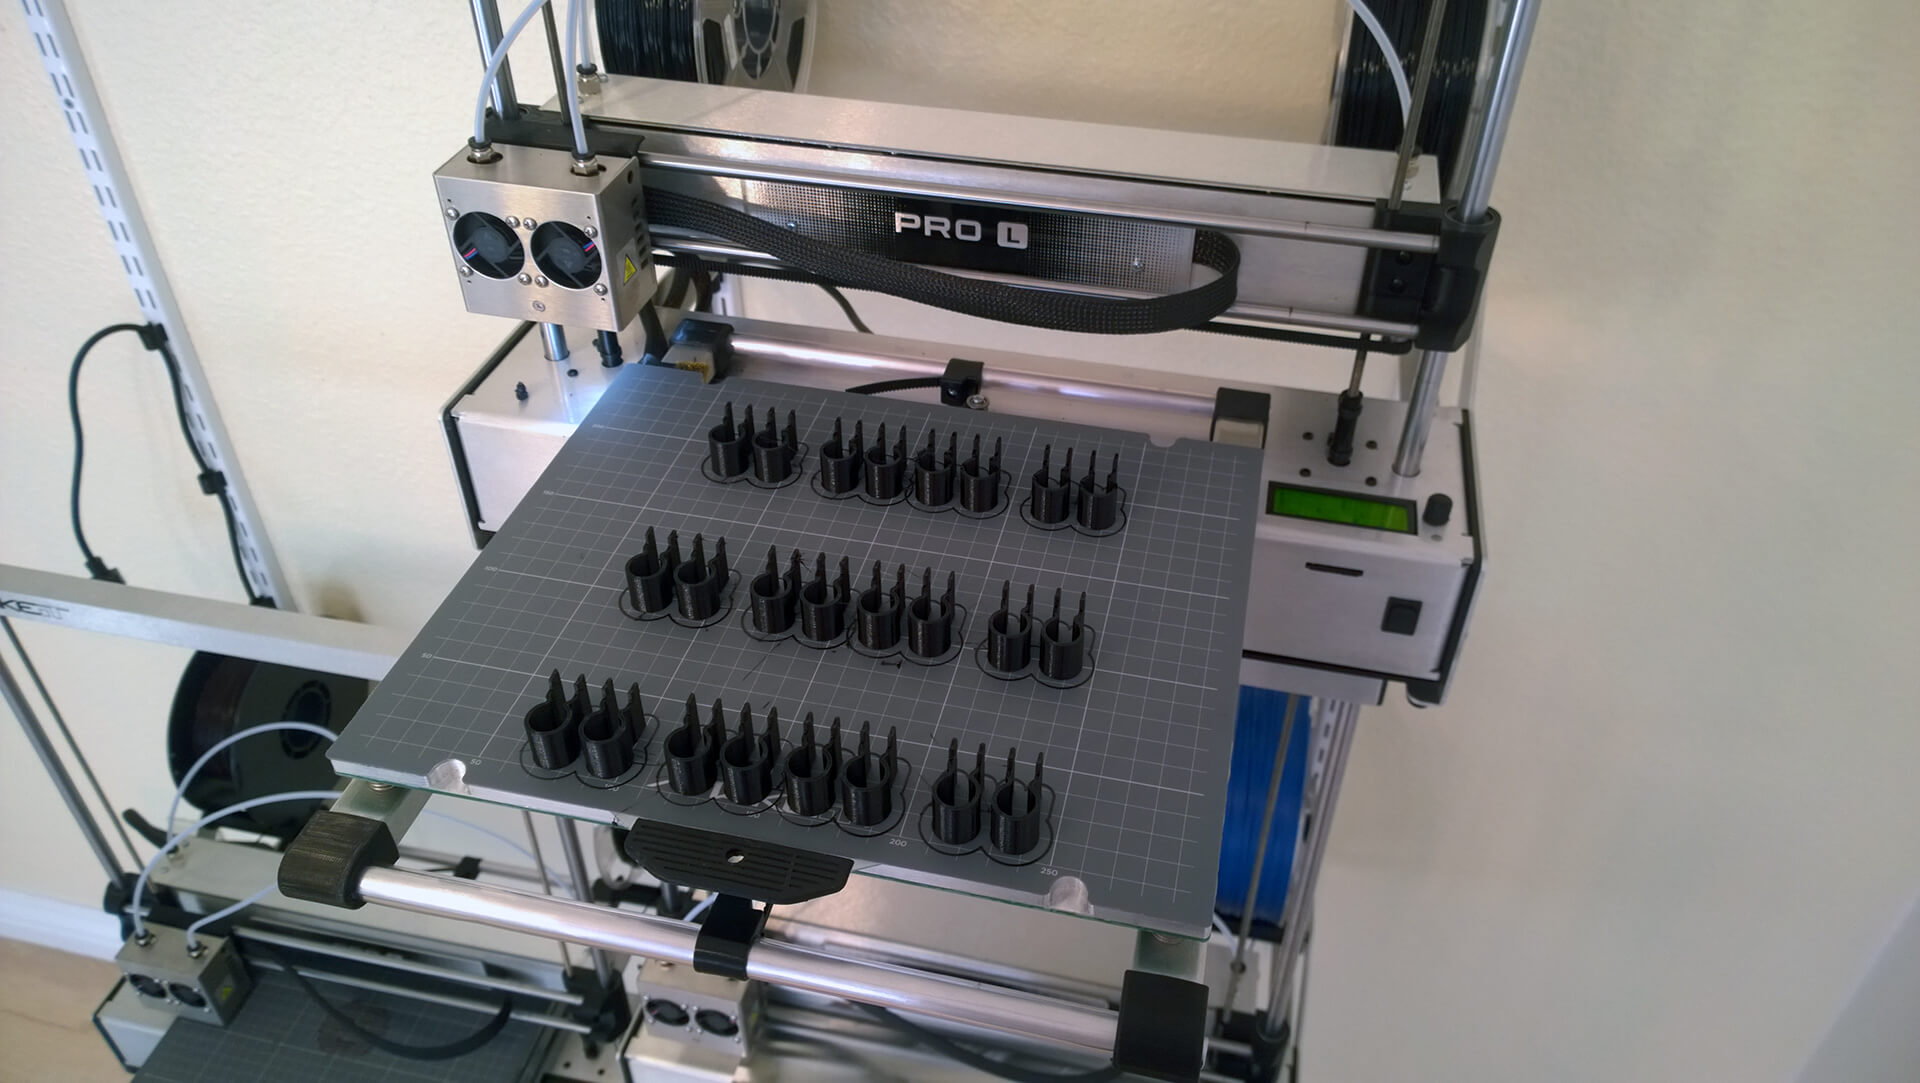 24 3D printed parts together on one bed